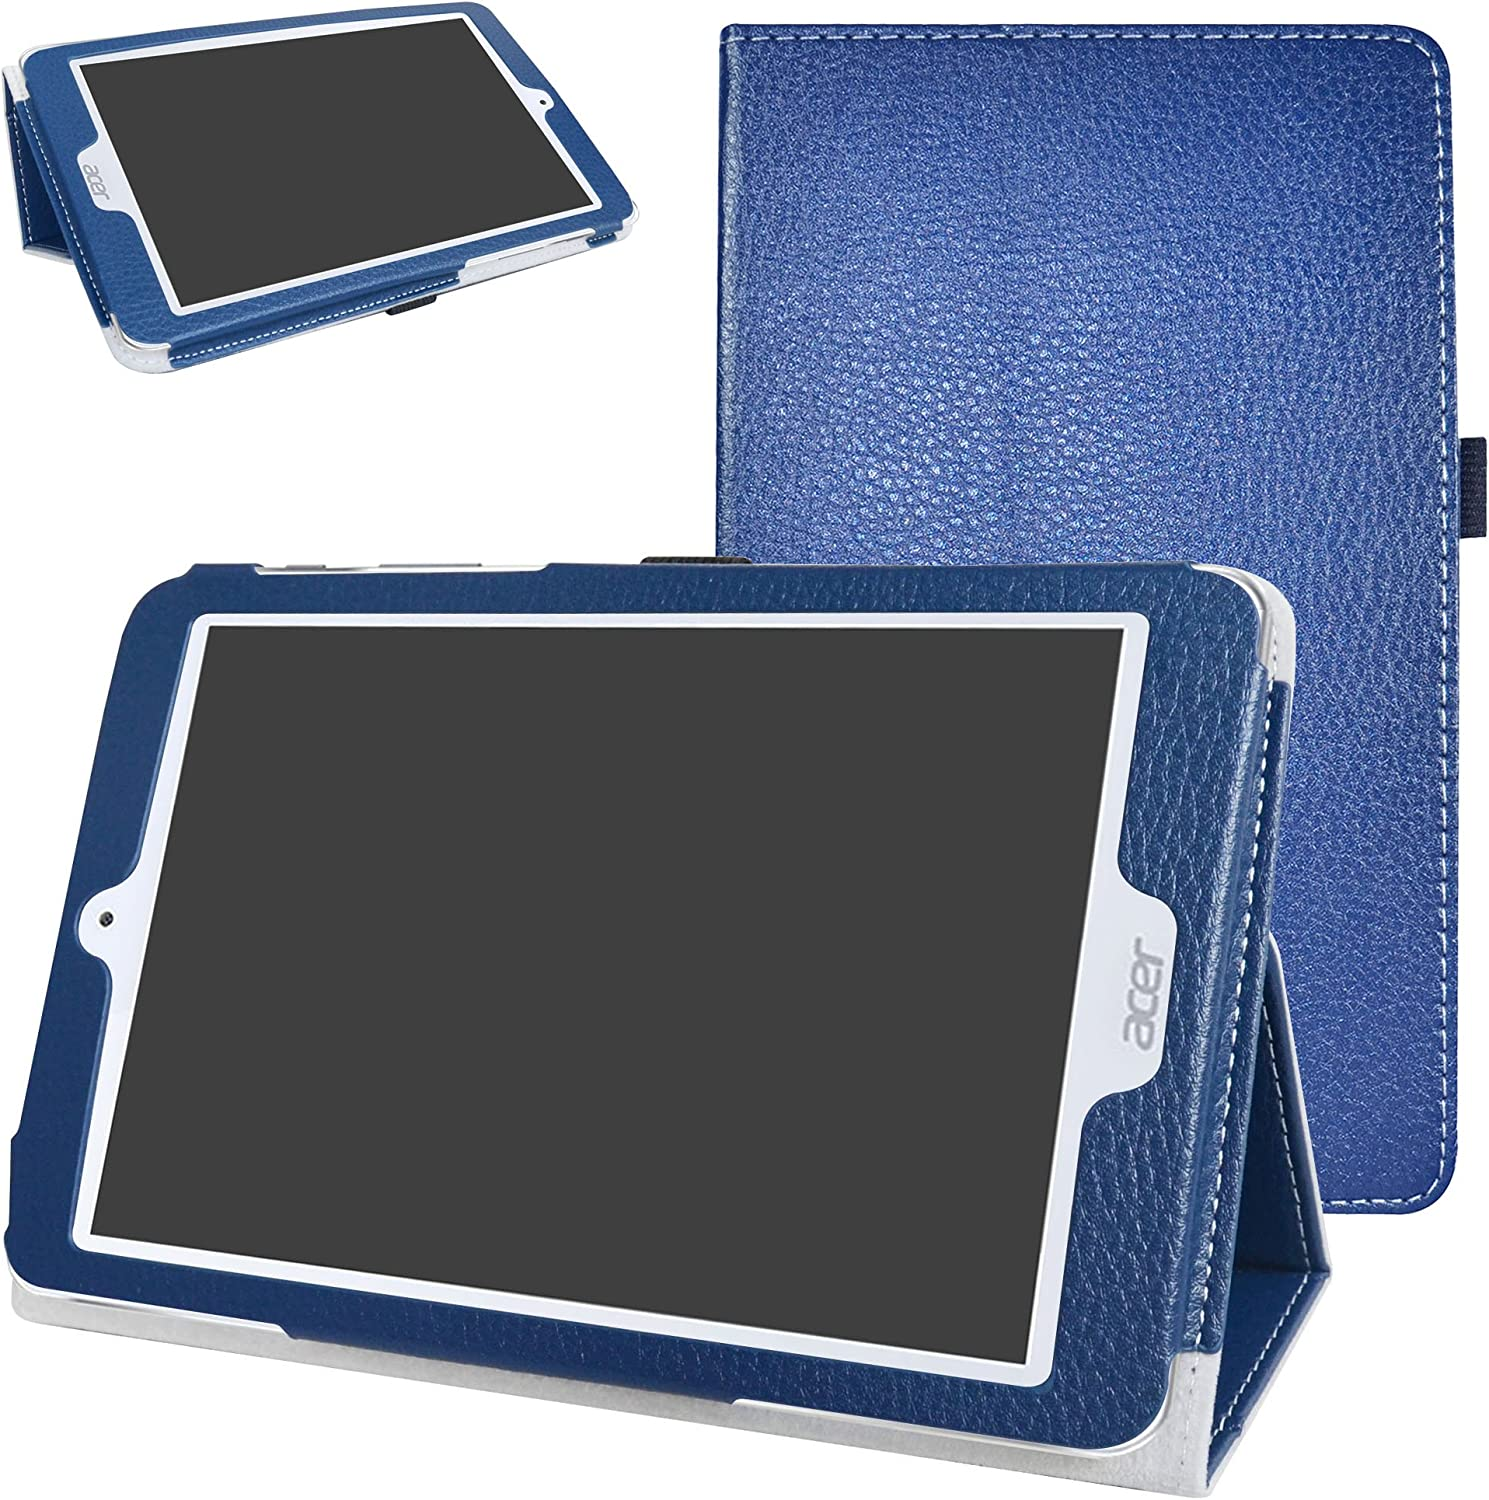 "Acer Iconia One 8 B1-860 Case,Mama Mouth PU Leather Folio 2-Folding Stand Cover with Stylus Holder for 8.0"" Acer Iconia One 8 B1-860 Android Tablet,Dark Blue"